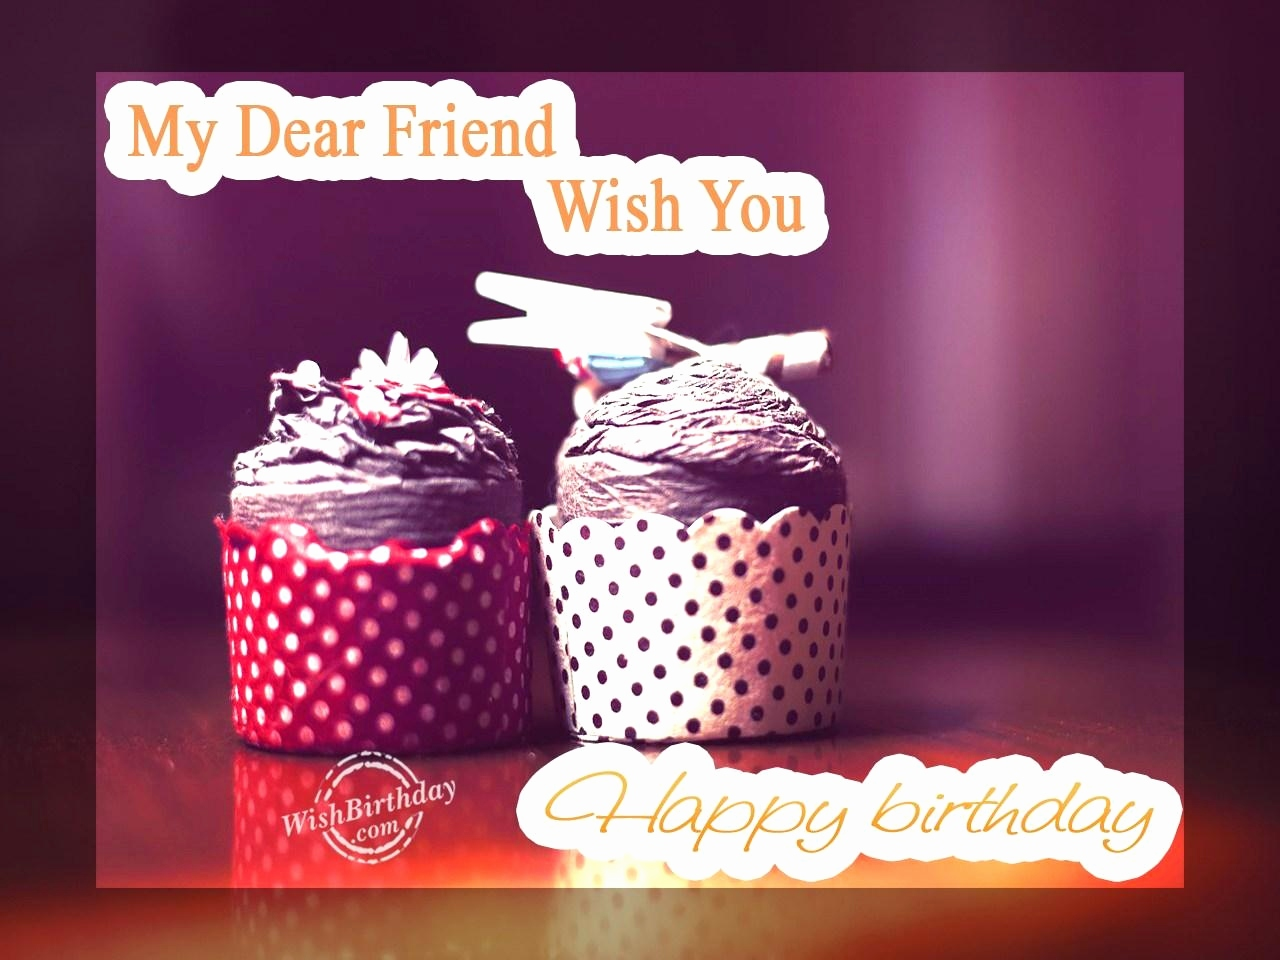 wish you happy birthday my dear friend ; wish-you-happy-birthday-my-dear-friend-elegant-happy-birthday-my-sweet-friend-red-rose-birthday-cake-of-wish-you-happy-birthday-my-dear-friend